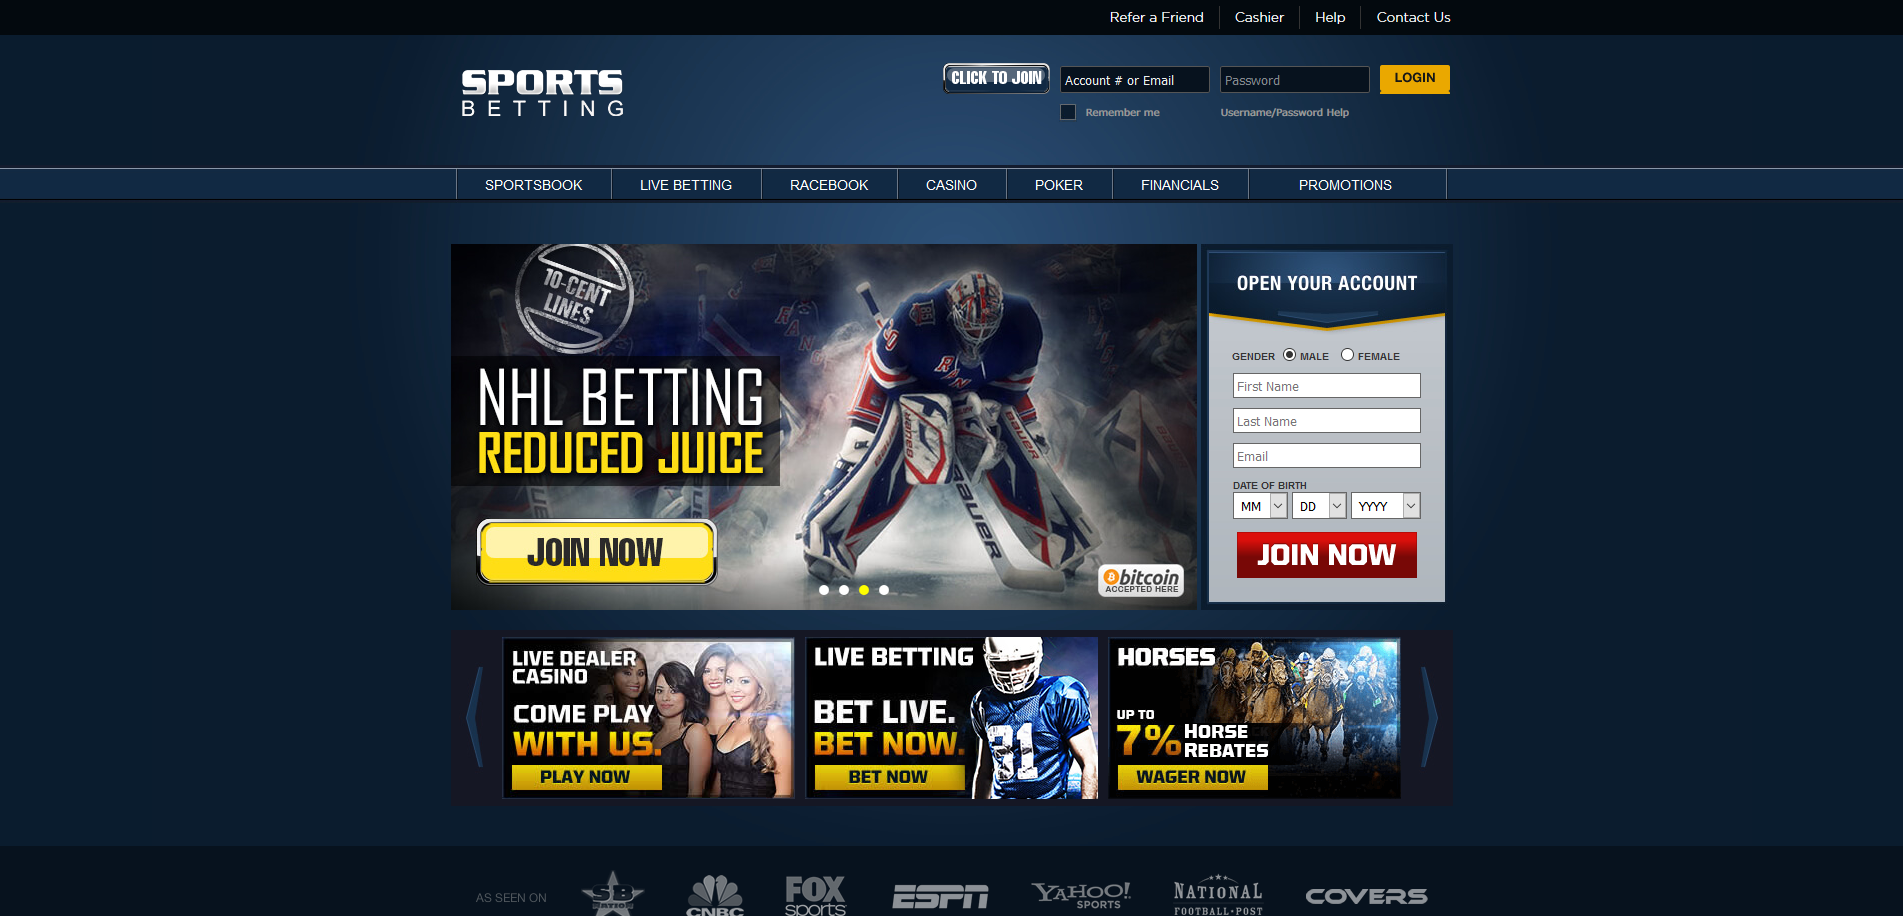 How to find the best betting sites?